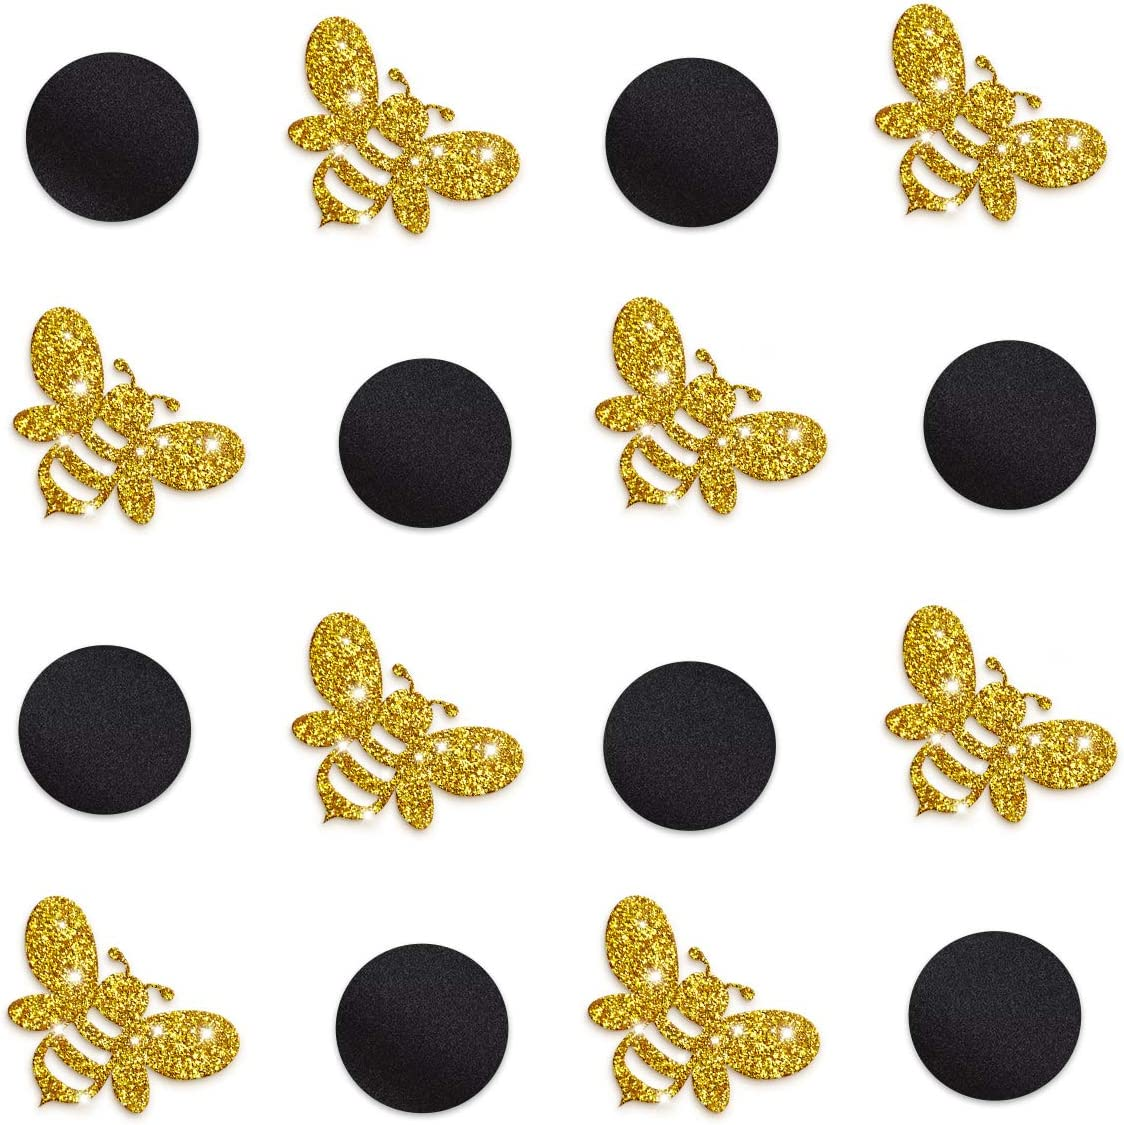 NICROLANDEE Bumble Bee Party Decoration - 100G Gold Glitter Bee Mix Black Circle Table Confetti for Mommy to Bee Gender Reveal Pregnant Baby Shower Birthday Wall Decor